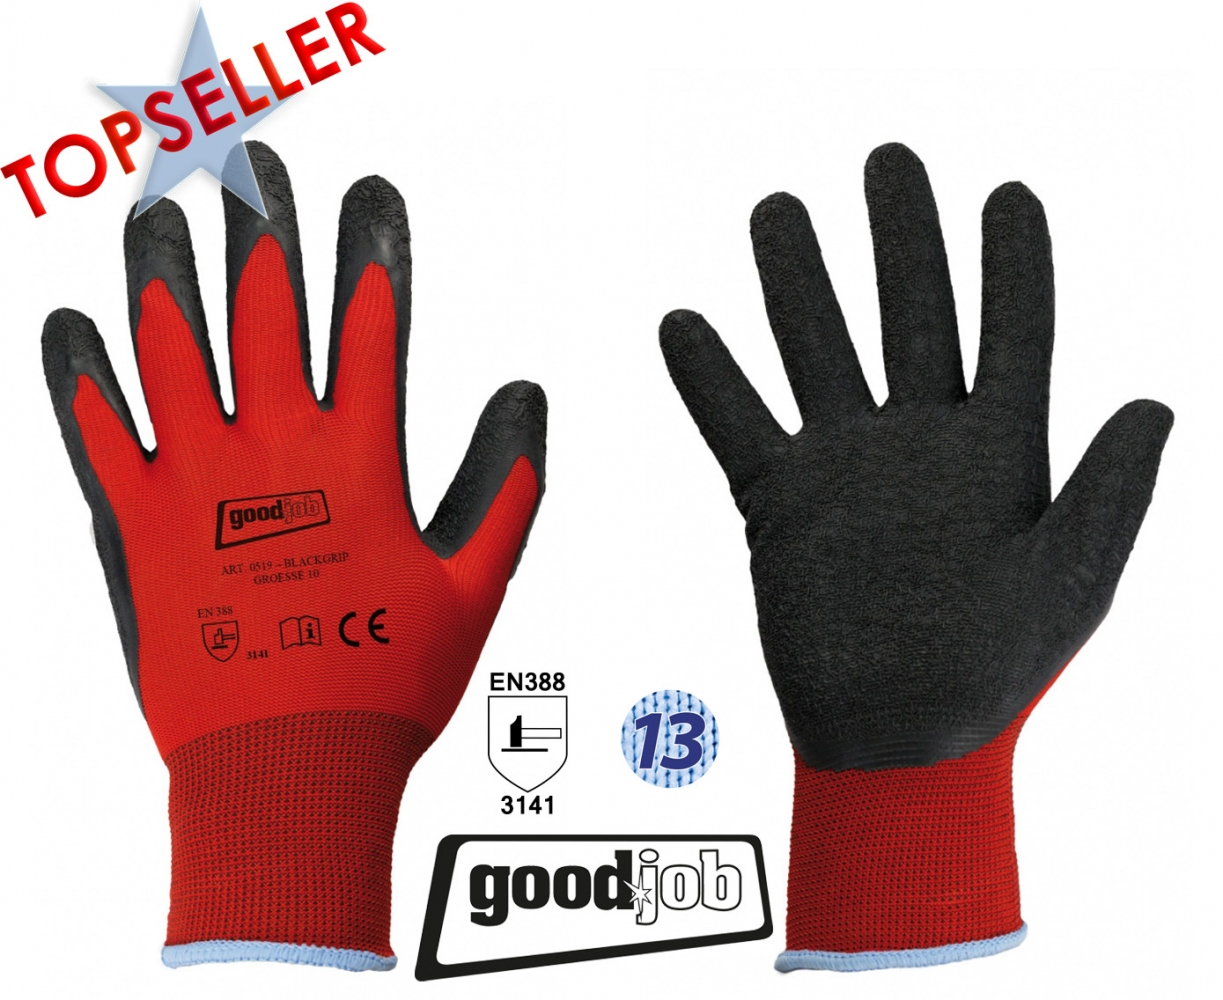 pics/Feldtmann 2016/E.I.S. Topseller/good-job-0519-black-grip-knit-safety-gloves-with-latex-coating-topseller.jpg